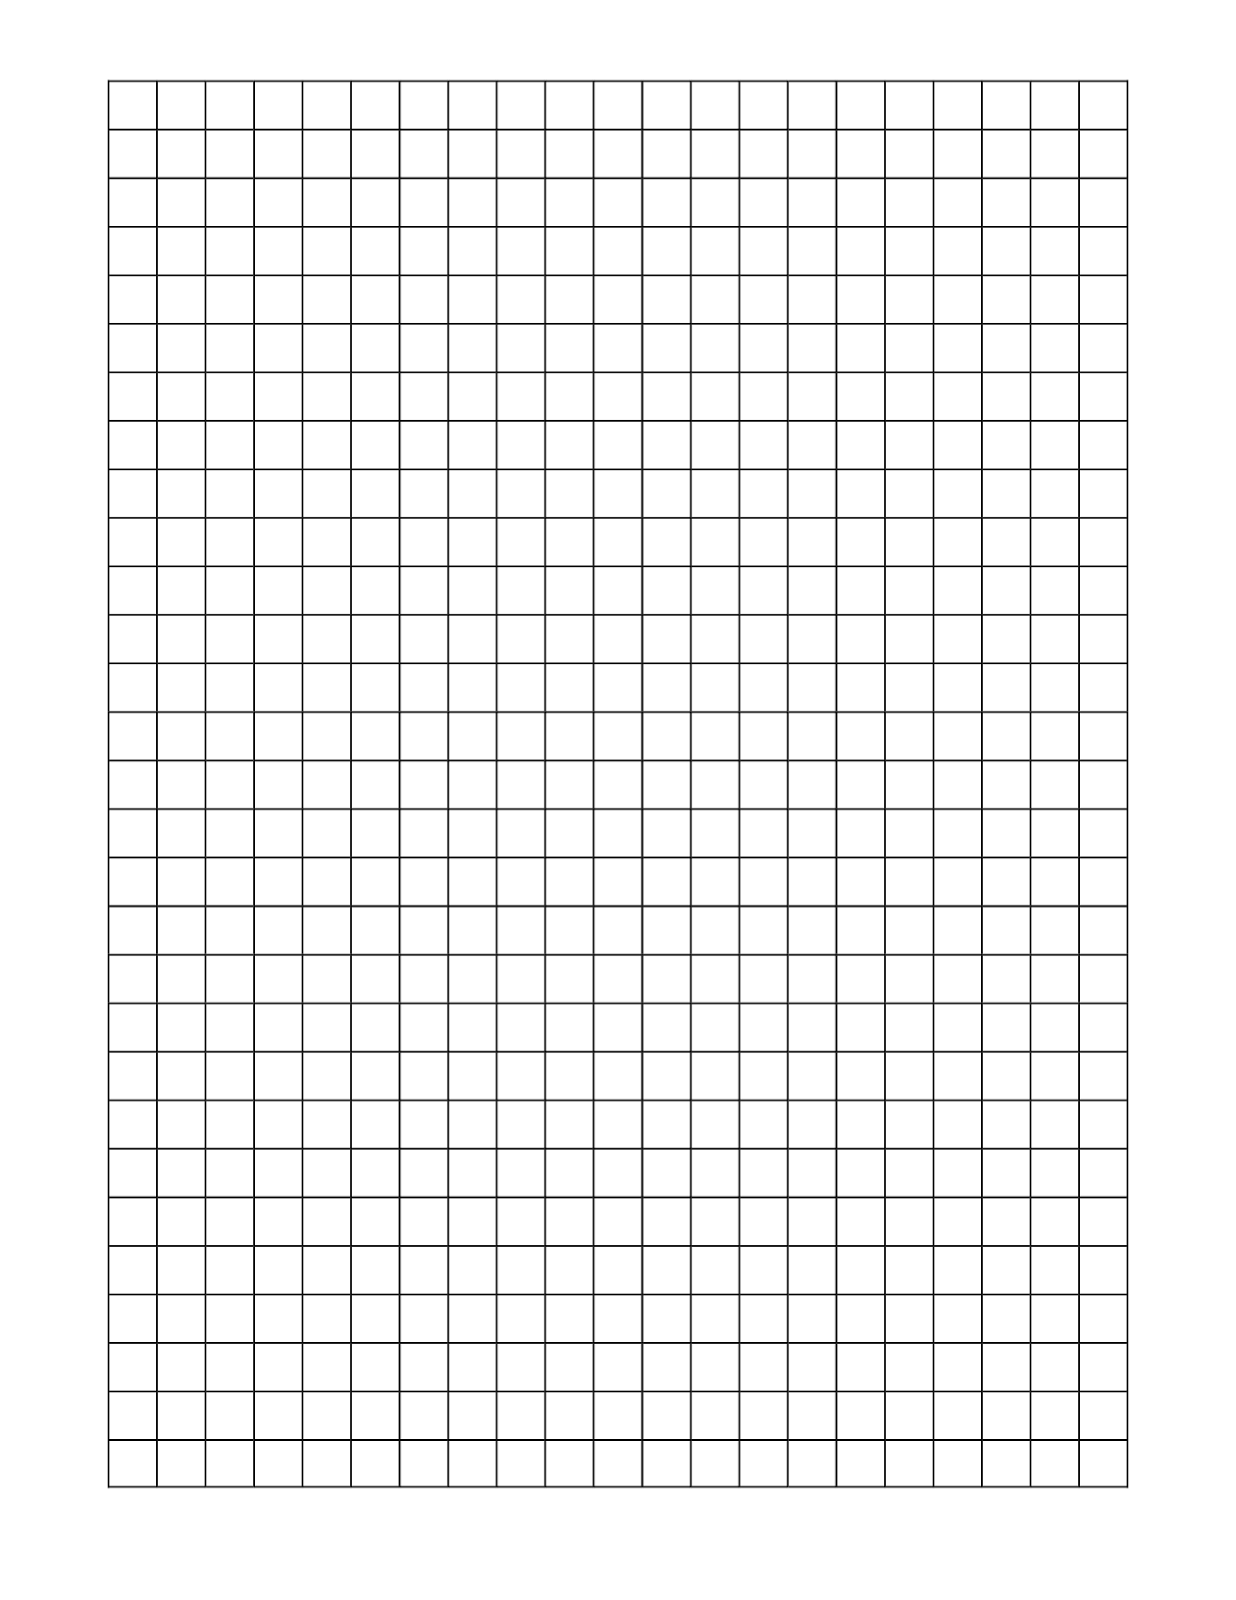 46 FREE GRAPH PAPER TO PRINT WITH X AND Y AXIS, AND GRAPH